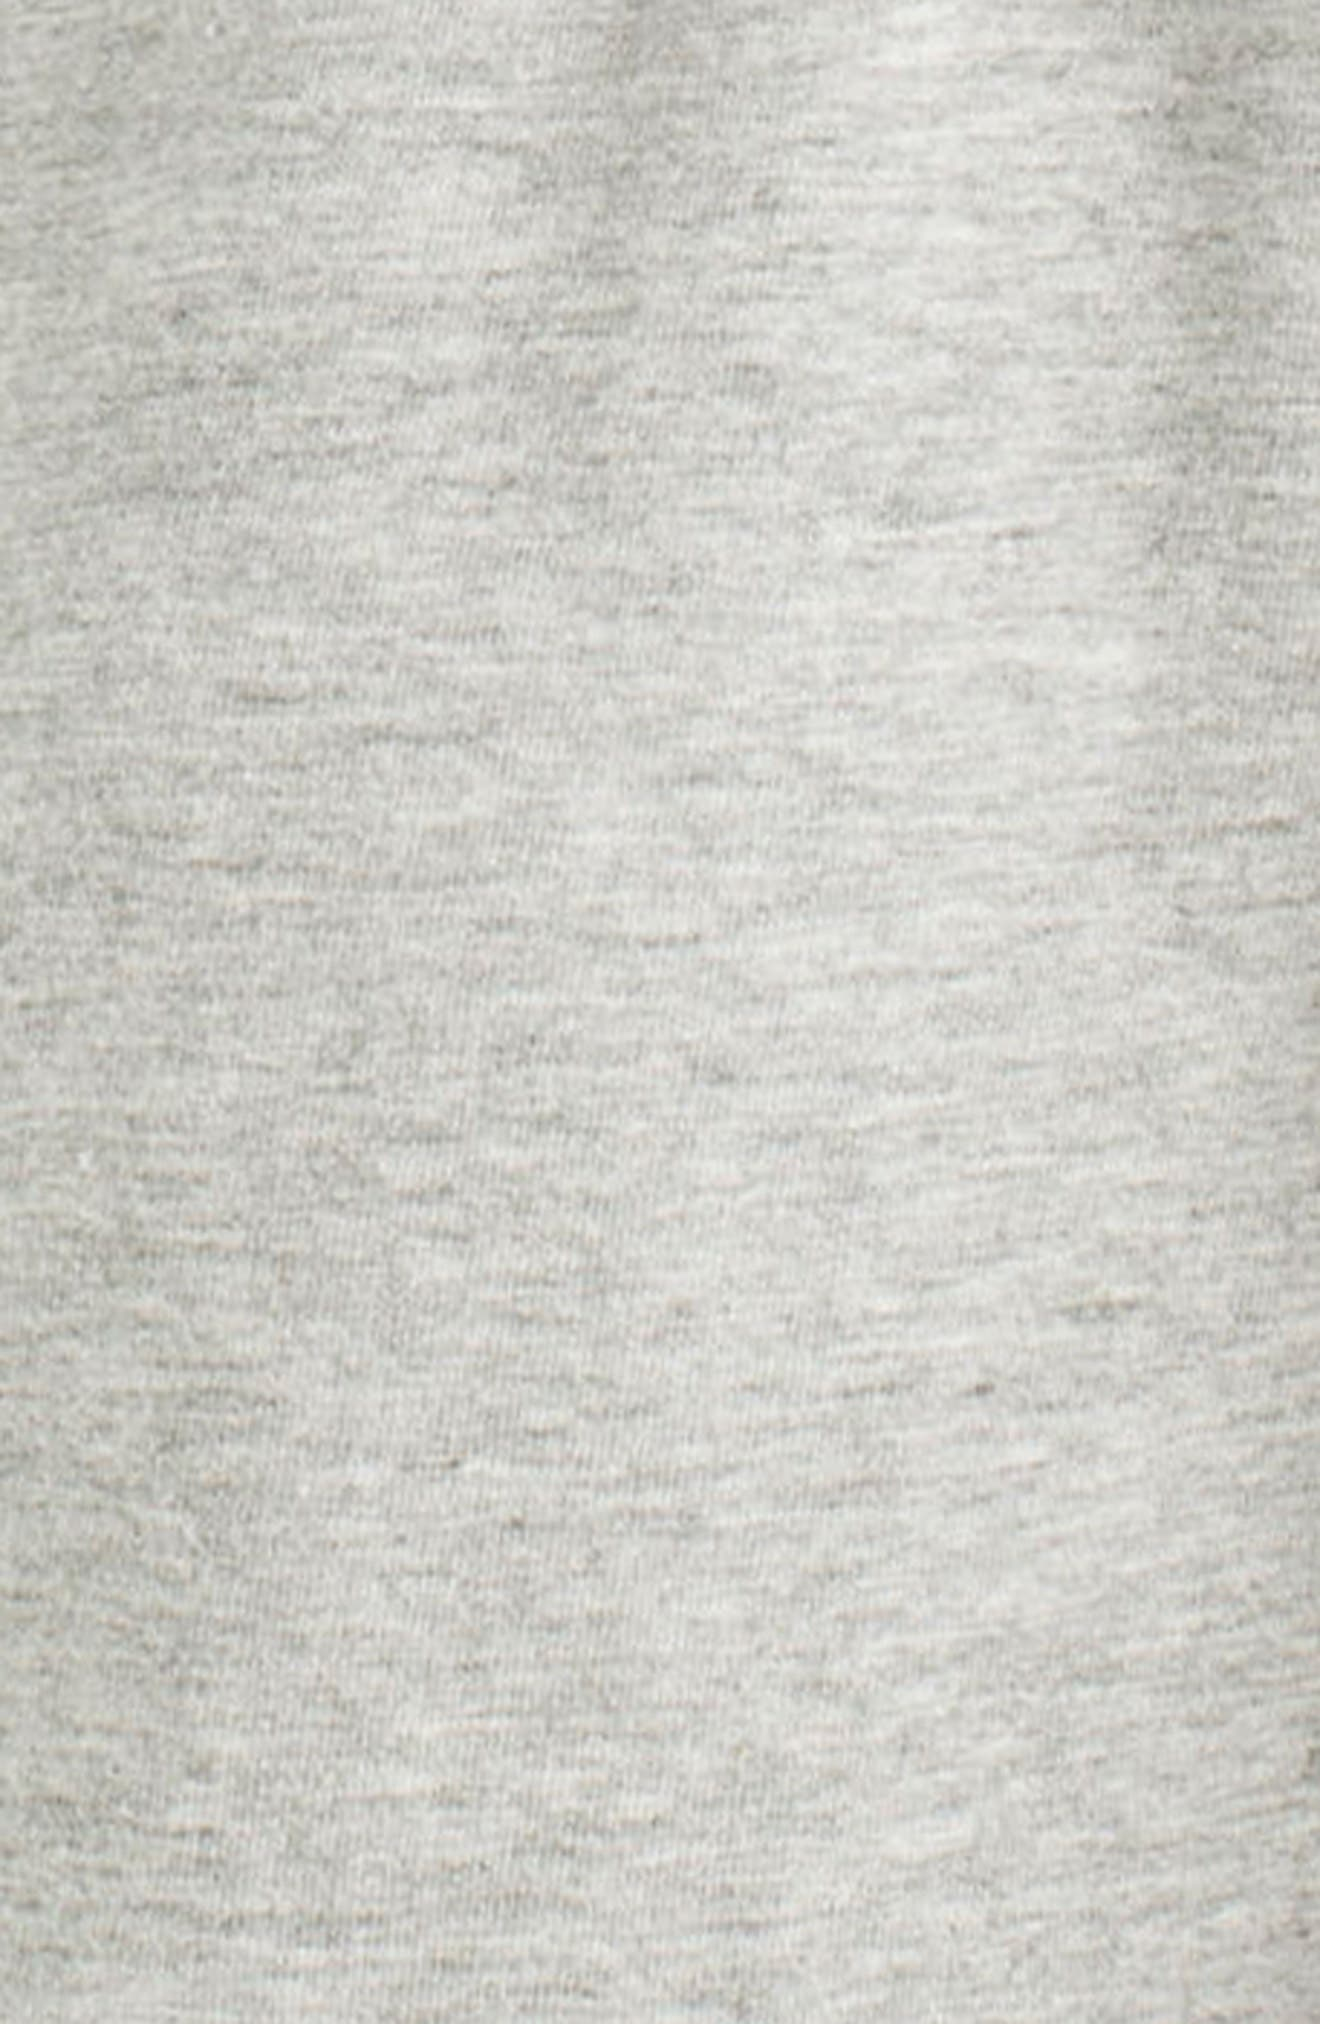 Knit Sleep Shirt,                             Alternate thumbnail 3, color,                             020